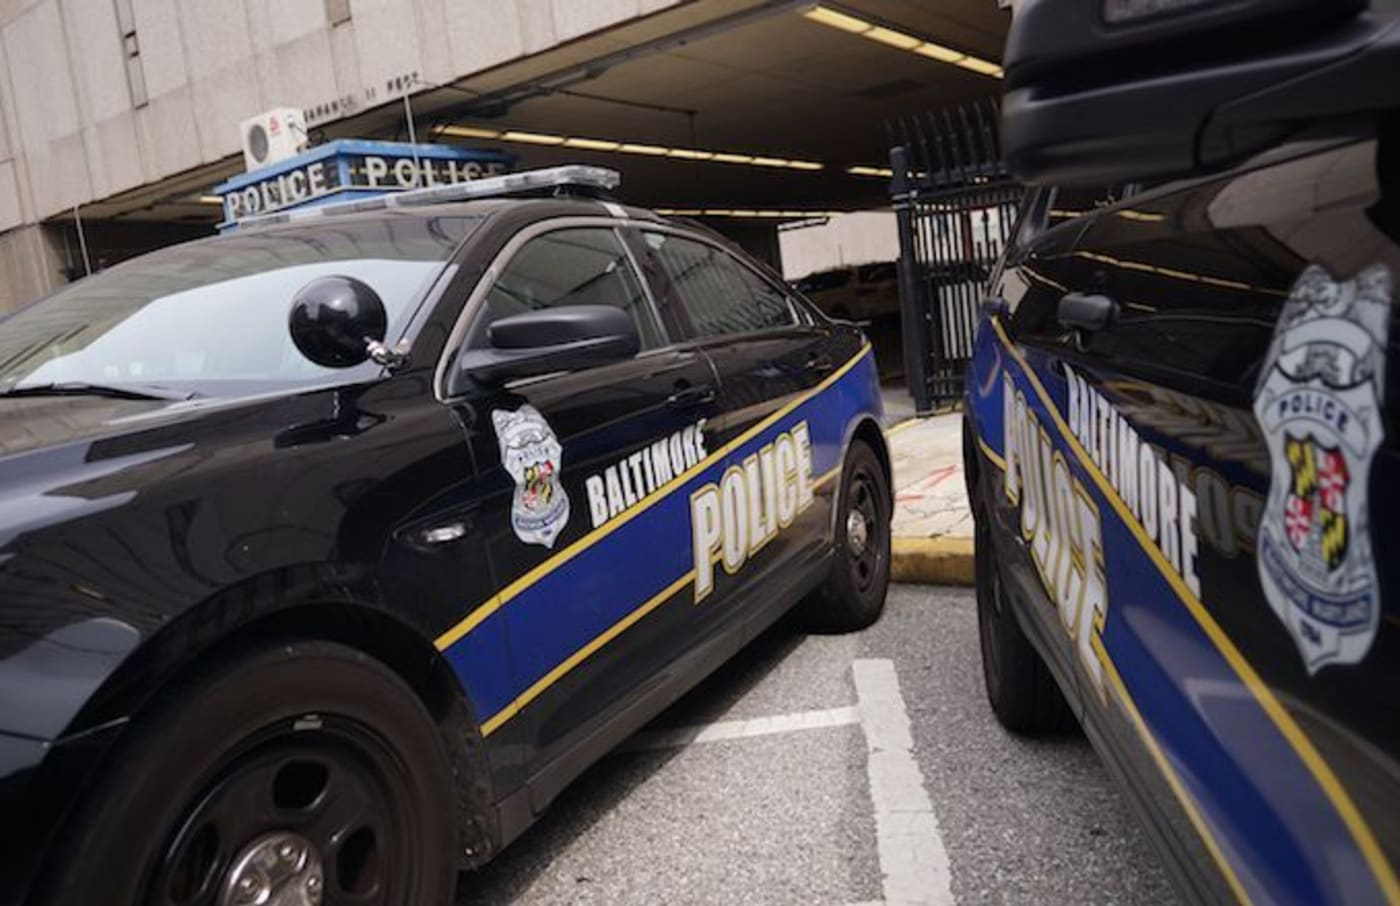 Police cars are seen outside of the Baltimore City Police Headquarters